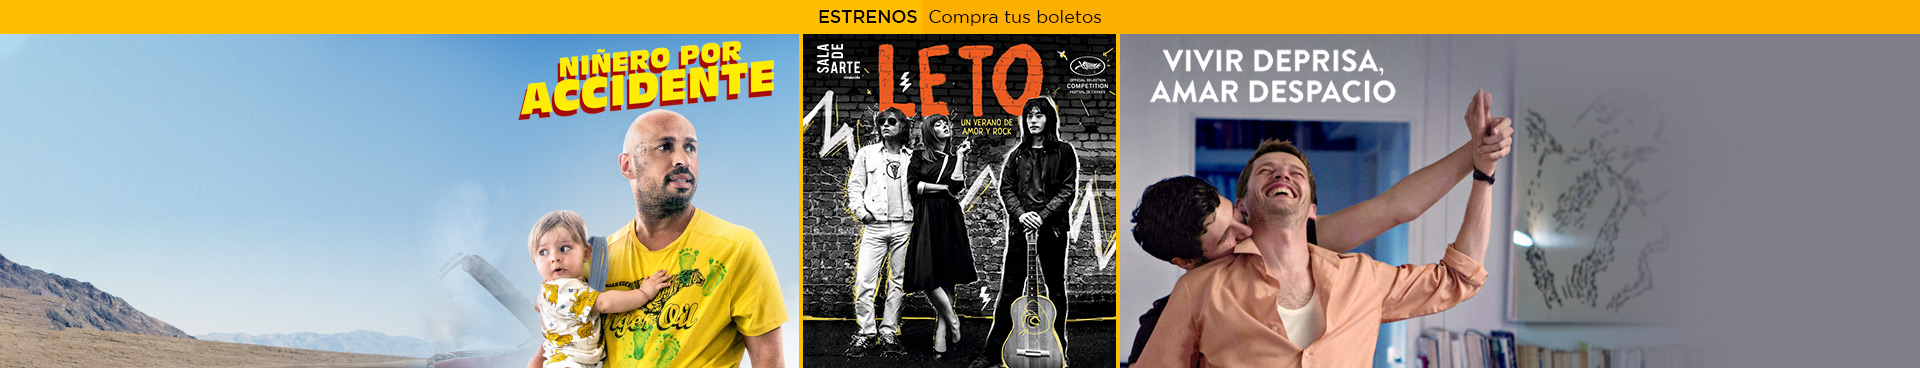 Estrenos: Niñero por accidente / Leto  / Vivir deprisa, amar despacio